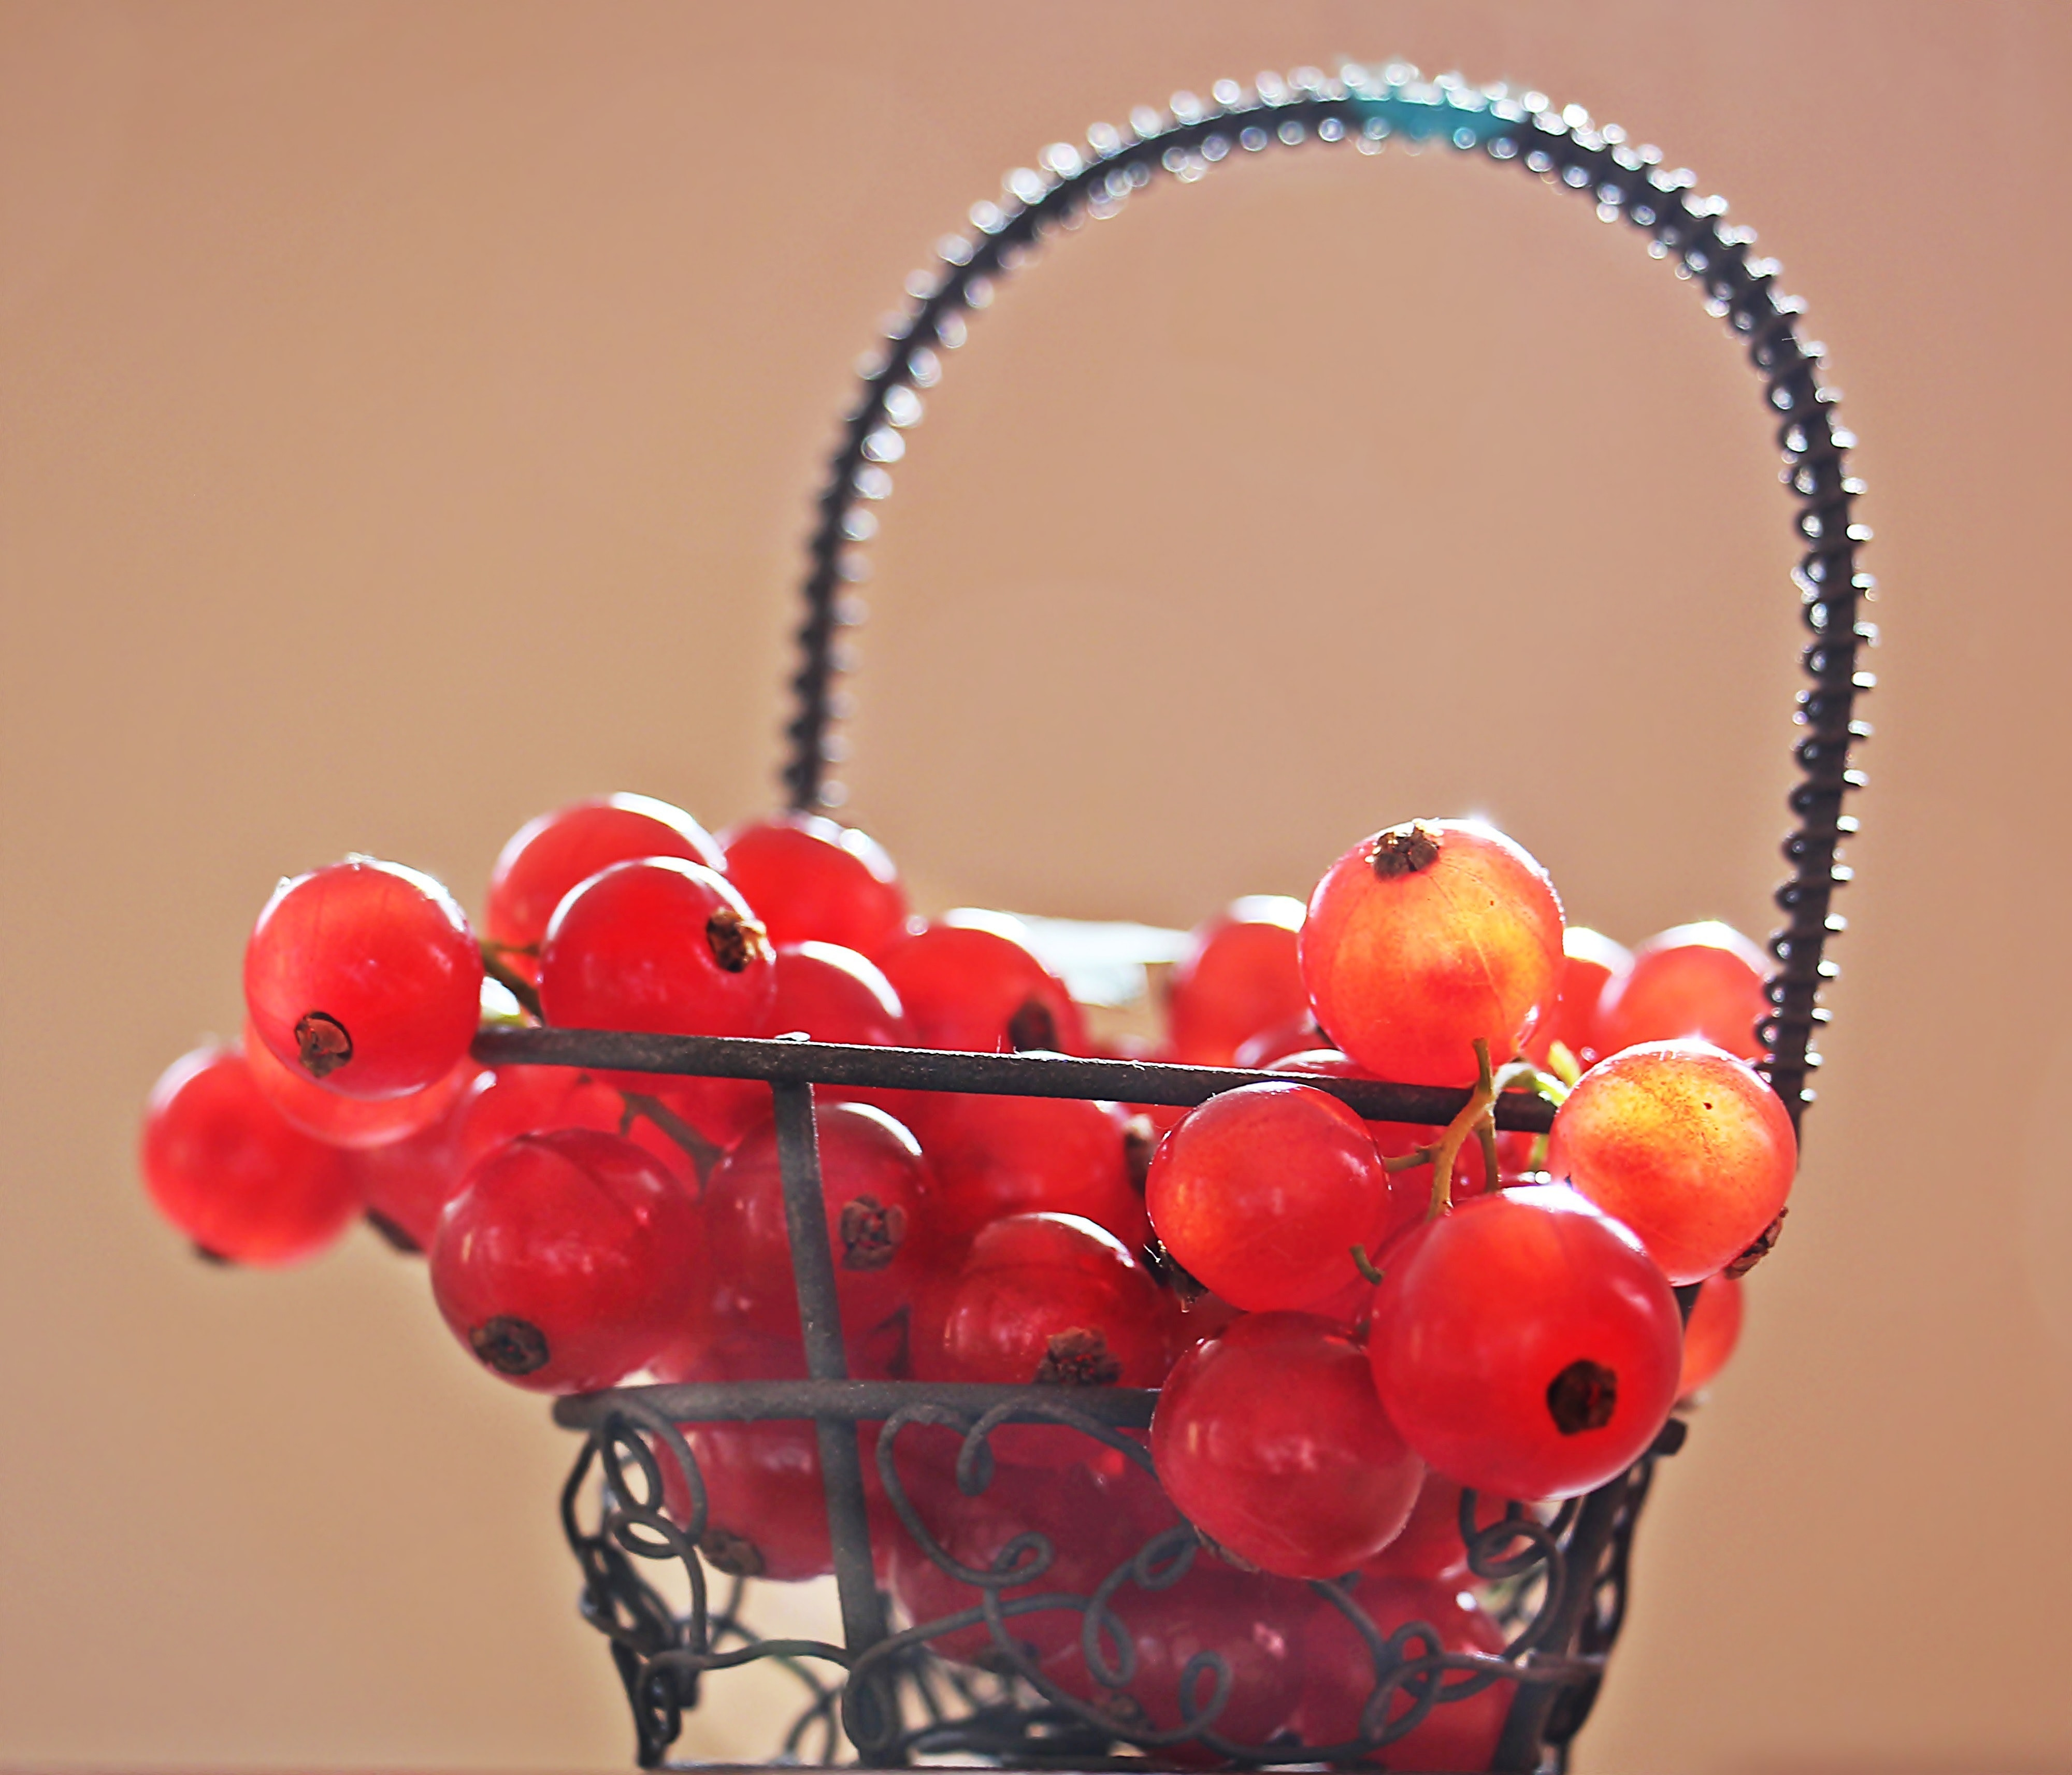 Red Cherries on Silver Metal Basket Photo, Basket, Tasty, Still life, Sour, HQ Photo